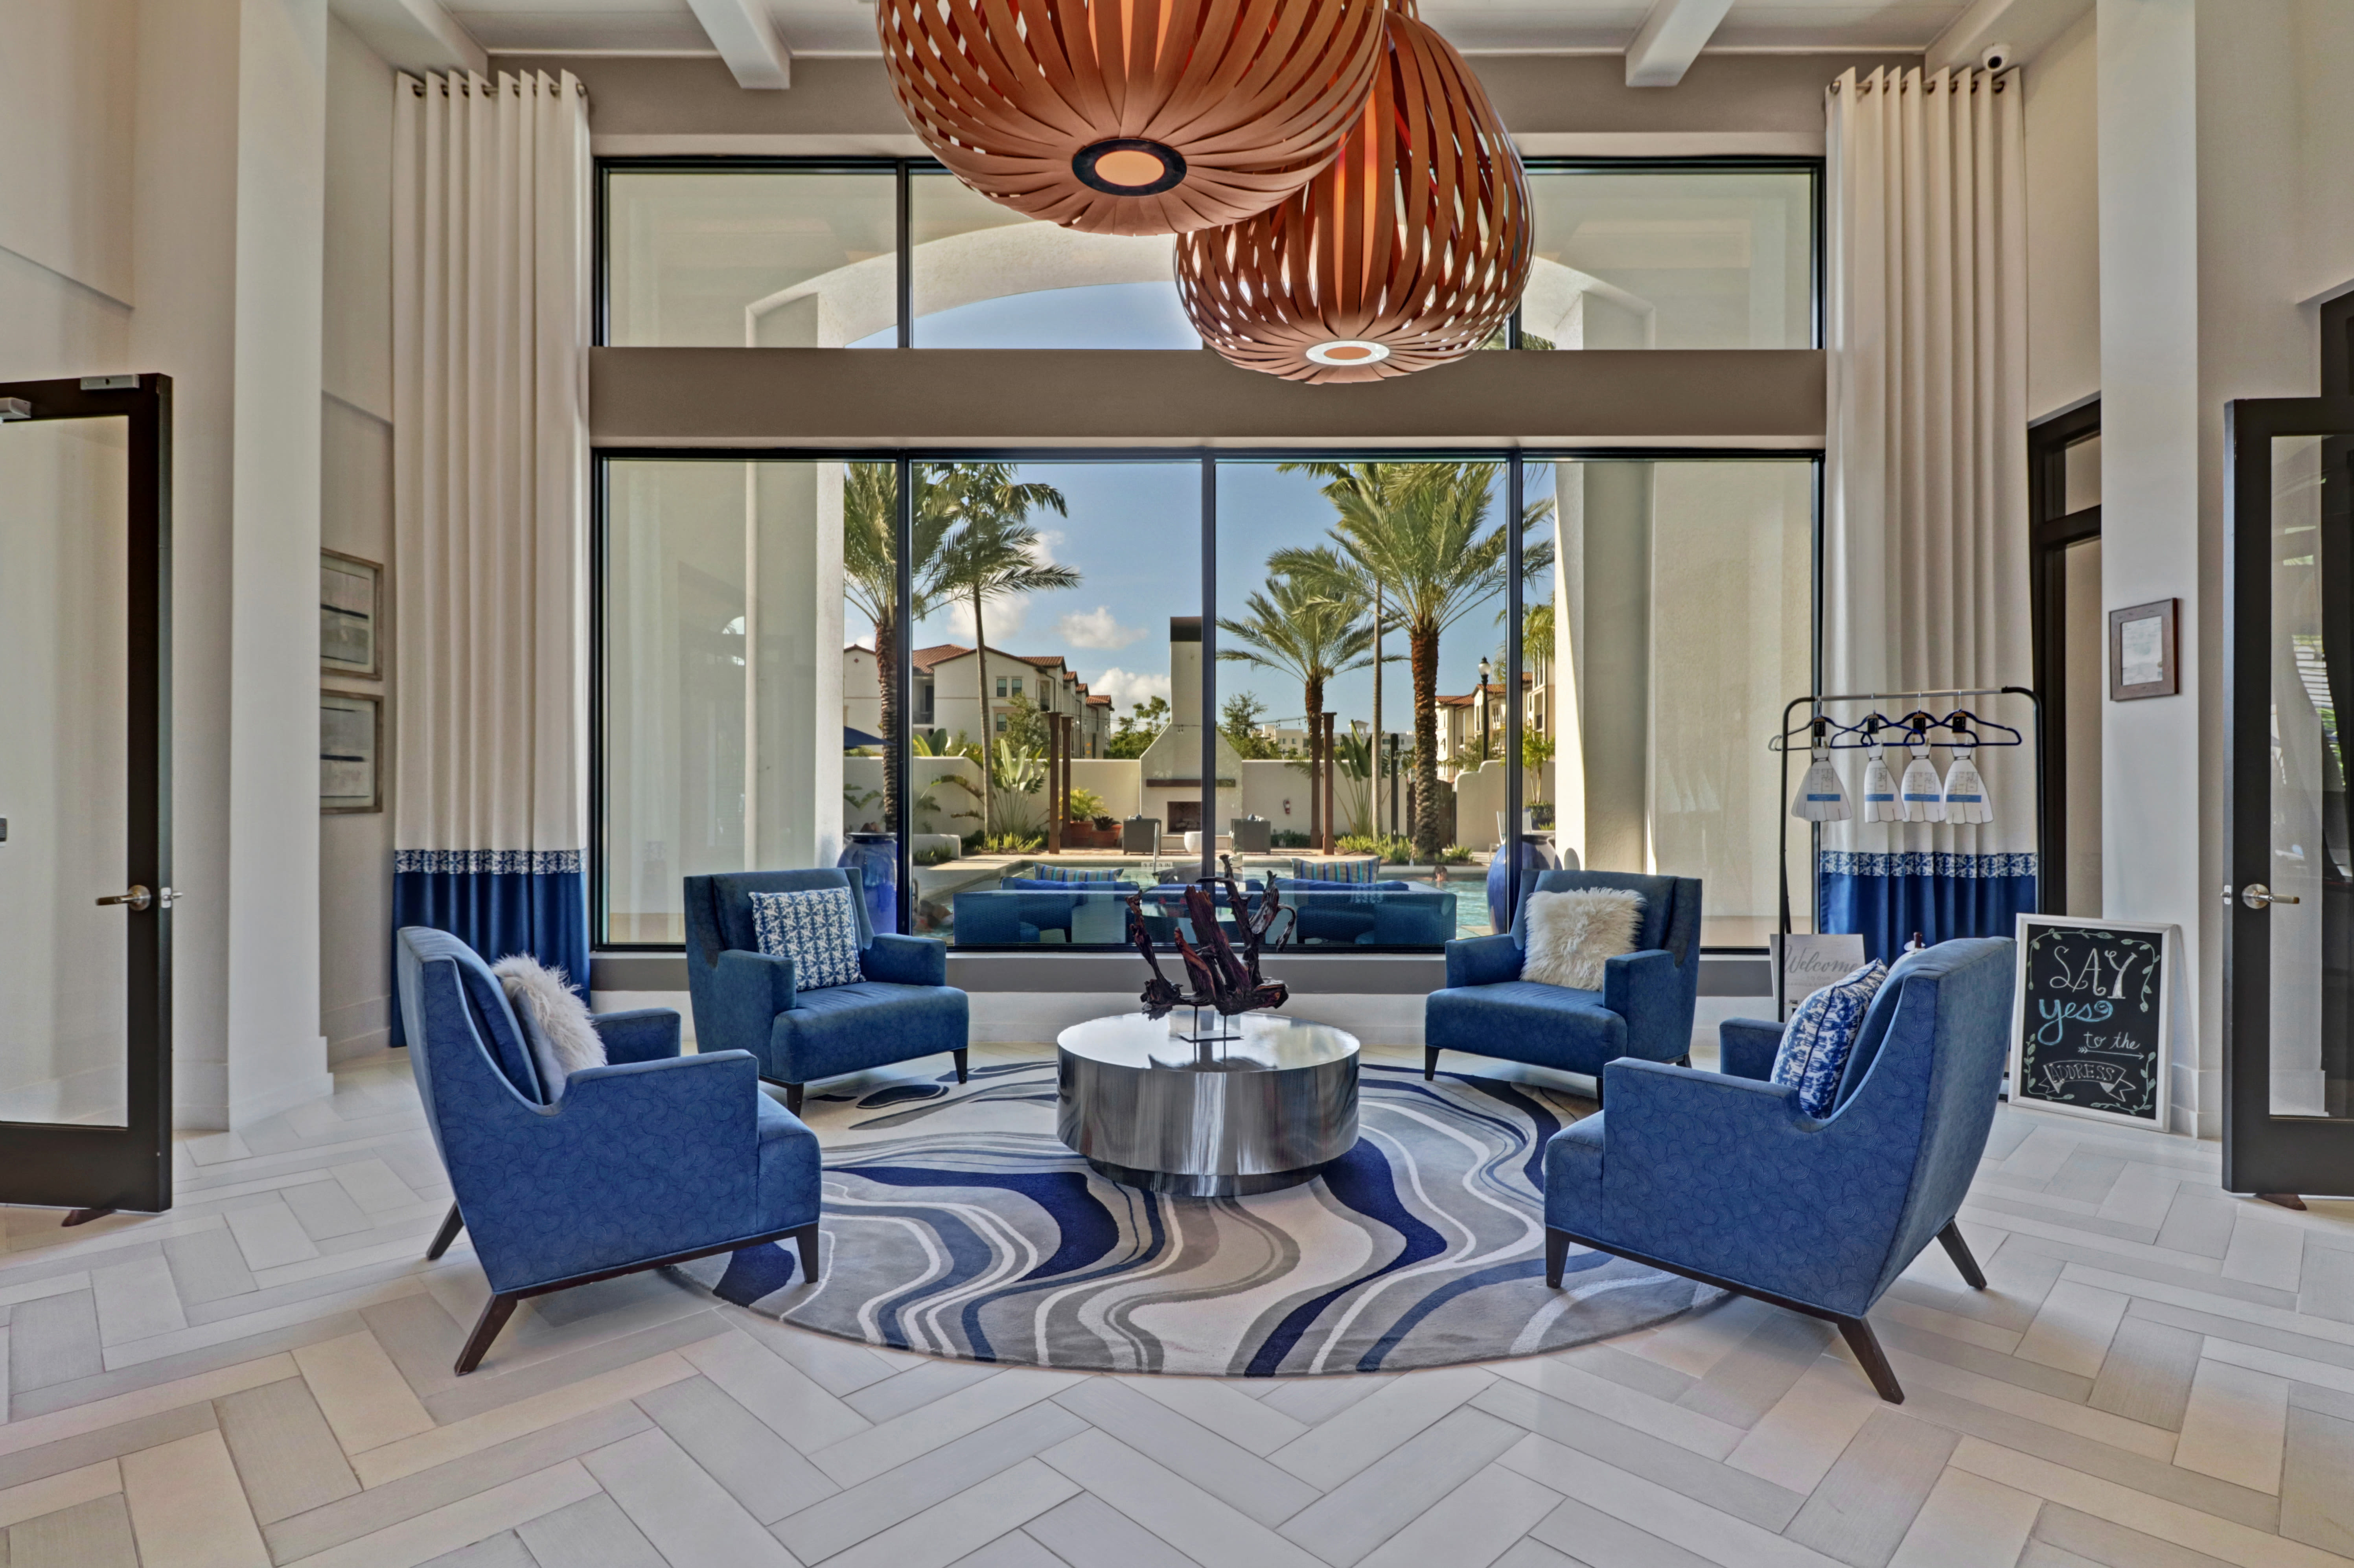 Clubhouse sitting area  at Linden Pointe in Pompano Beach, Florida features blue chairs and unique coffee table